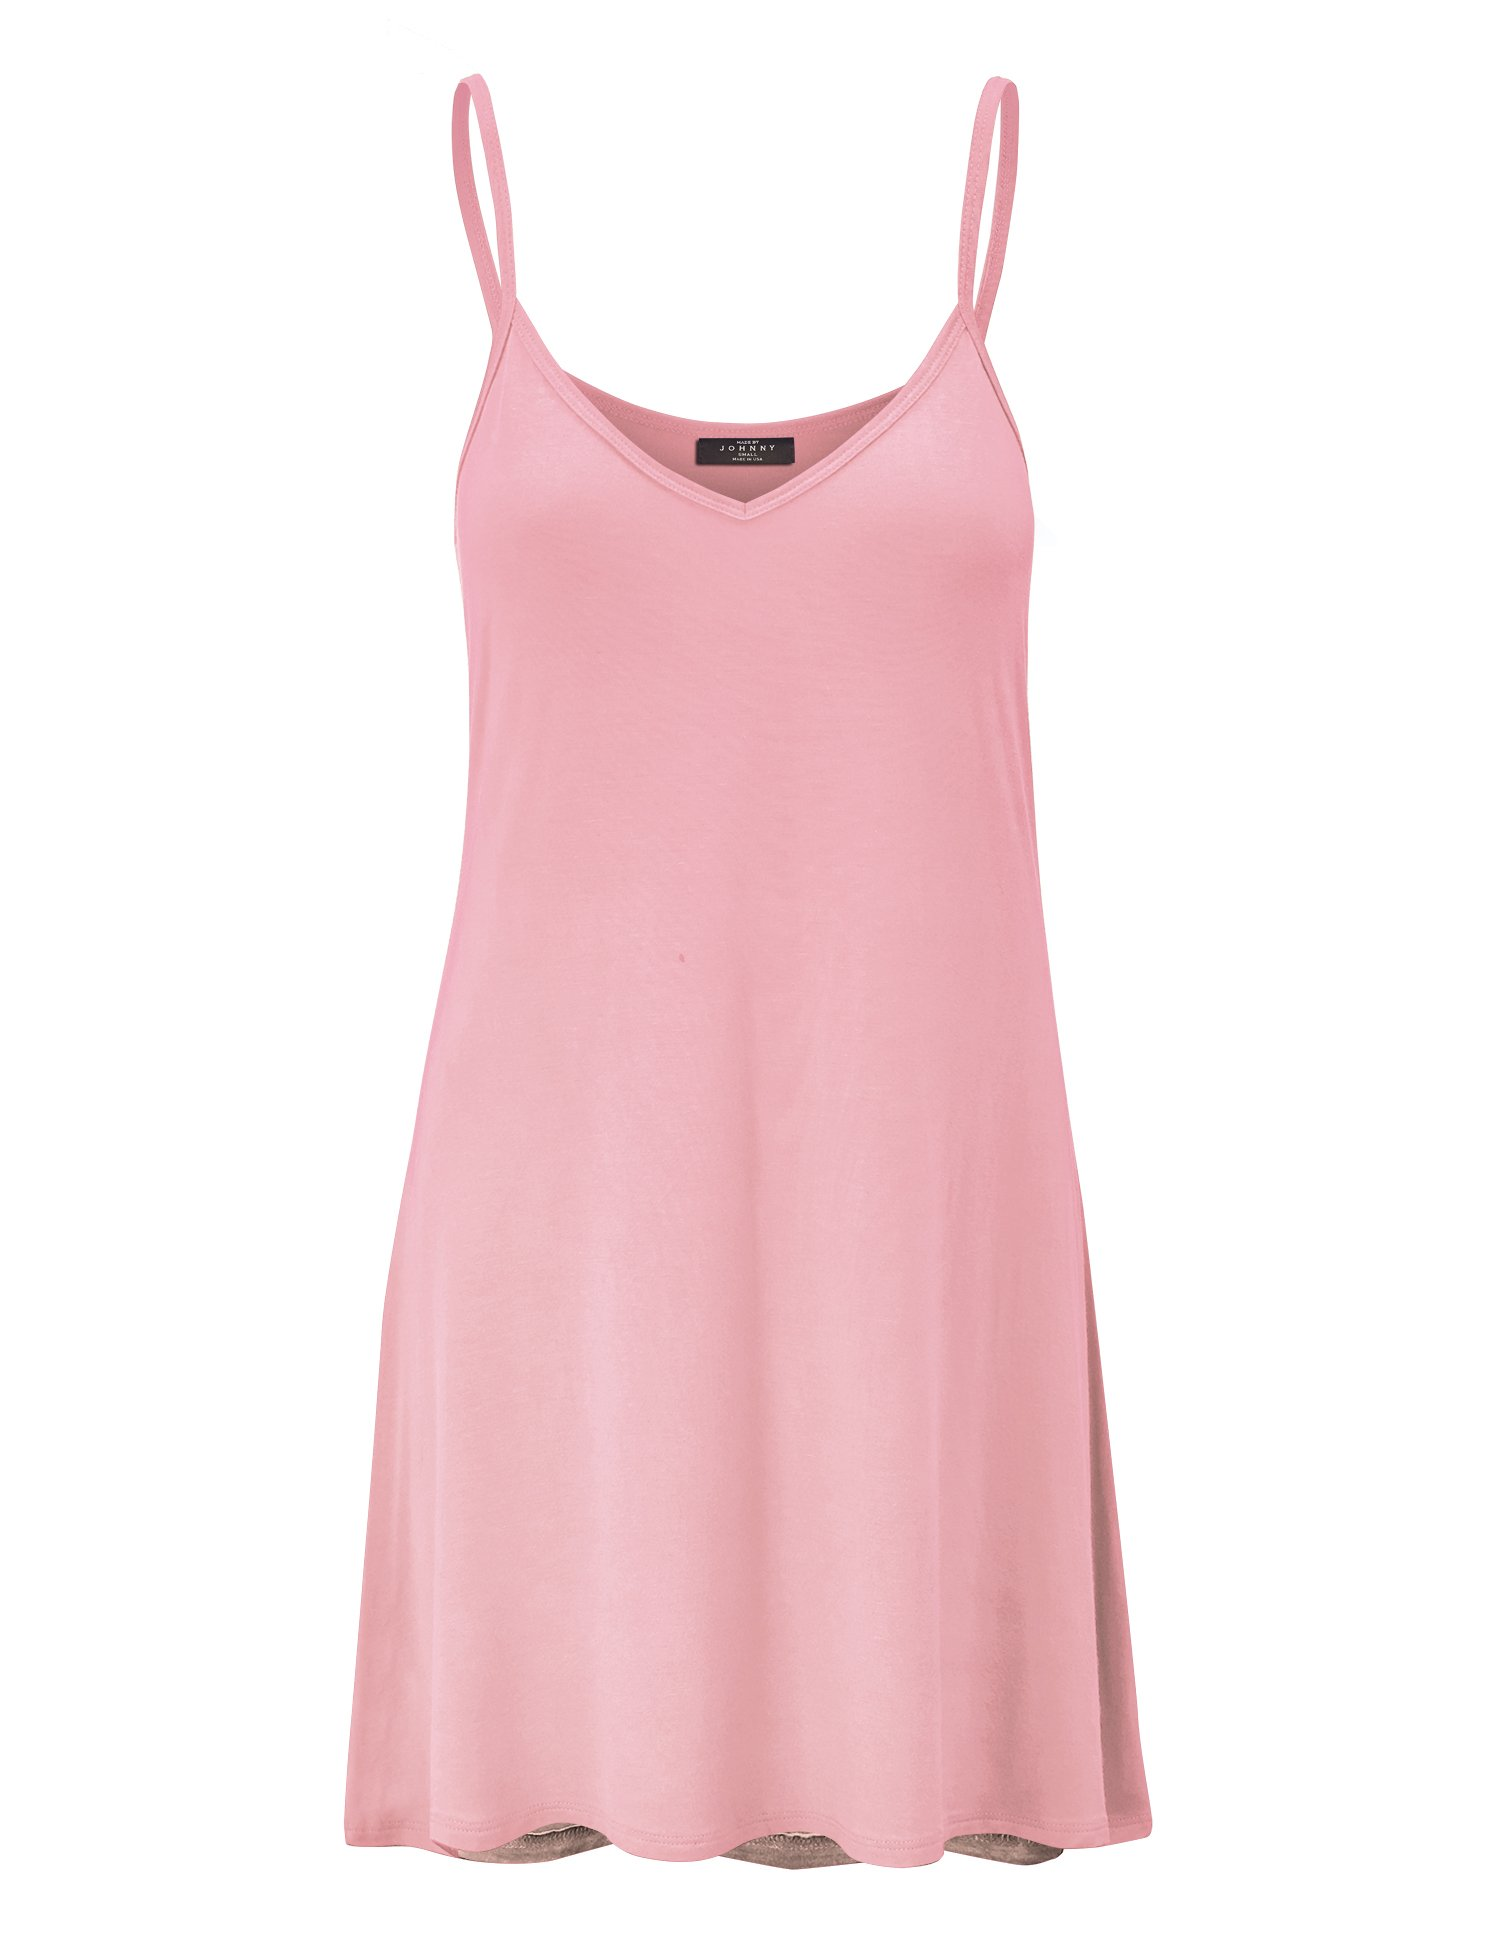 WDR1090 Womens V Neck Spaghetti Strap Tunic Short Dress S Pink by Lock and Love (Image #2)